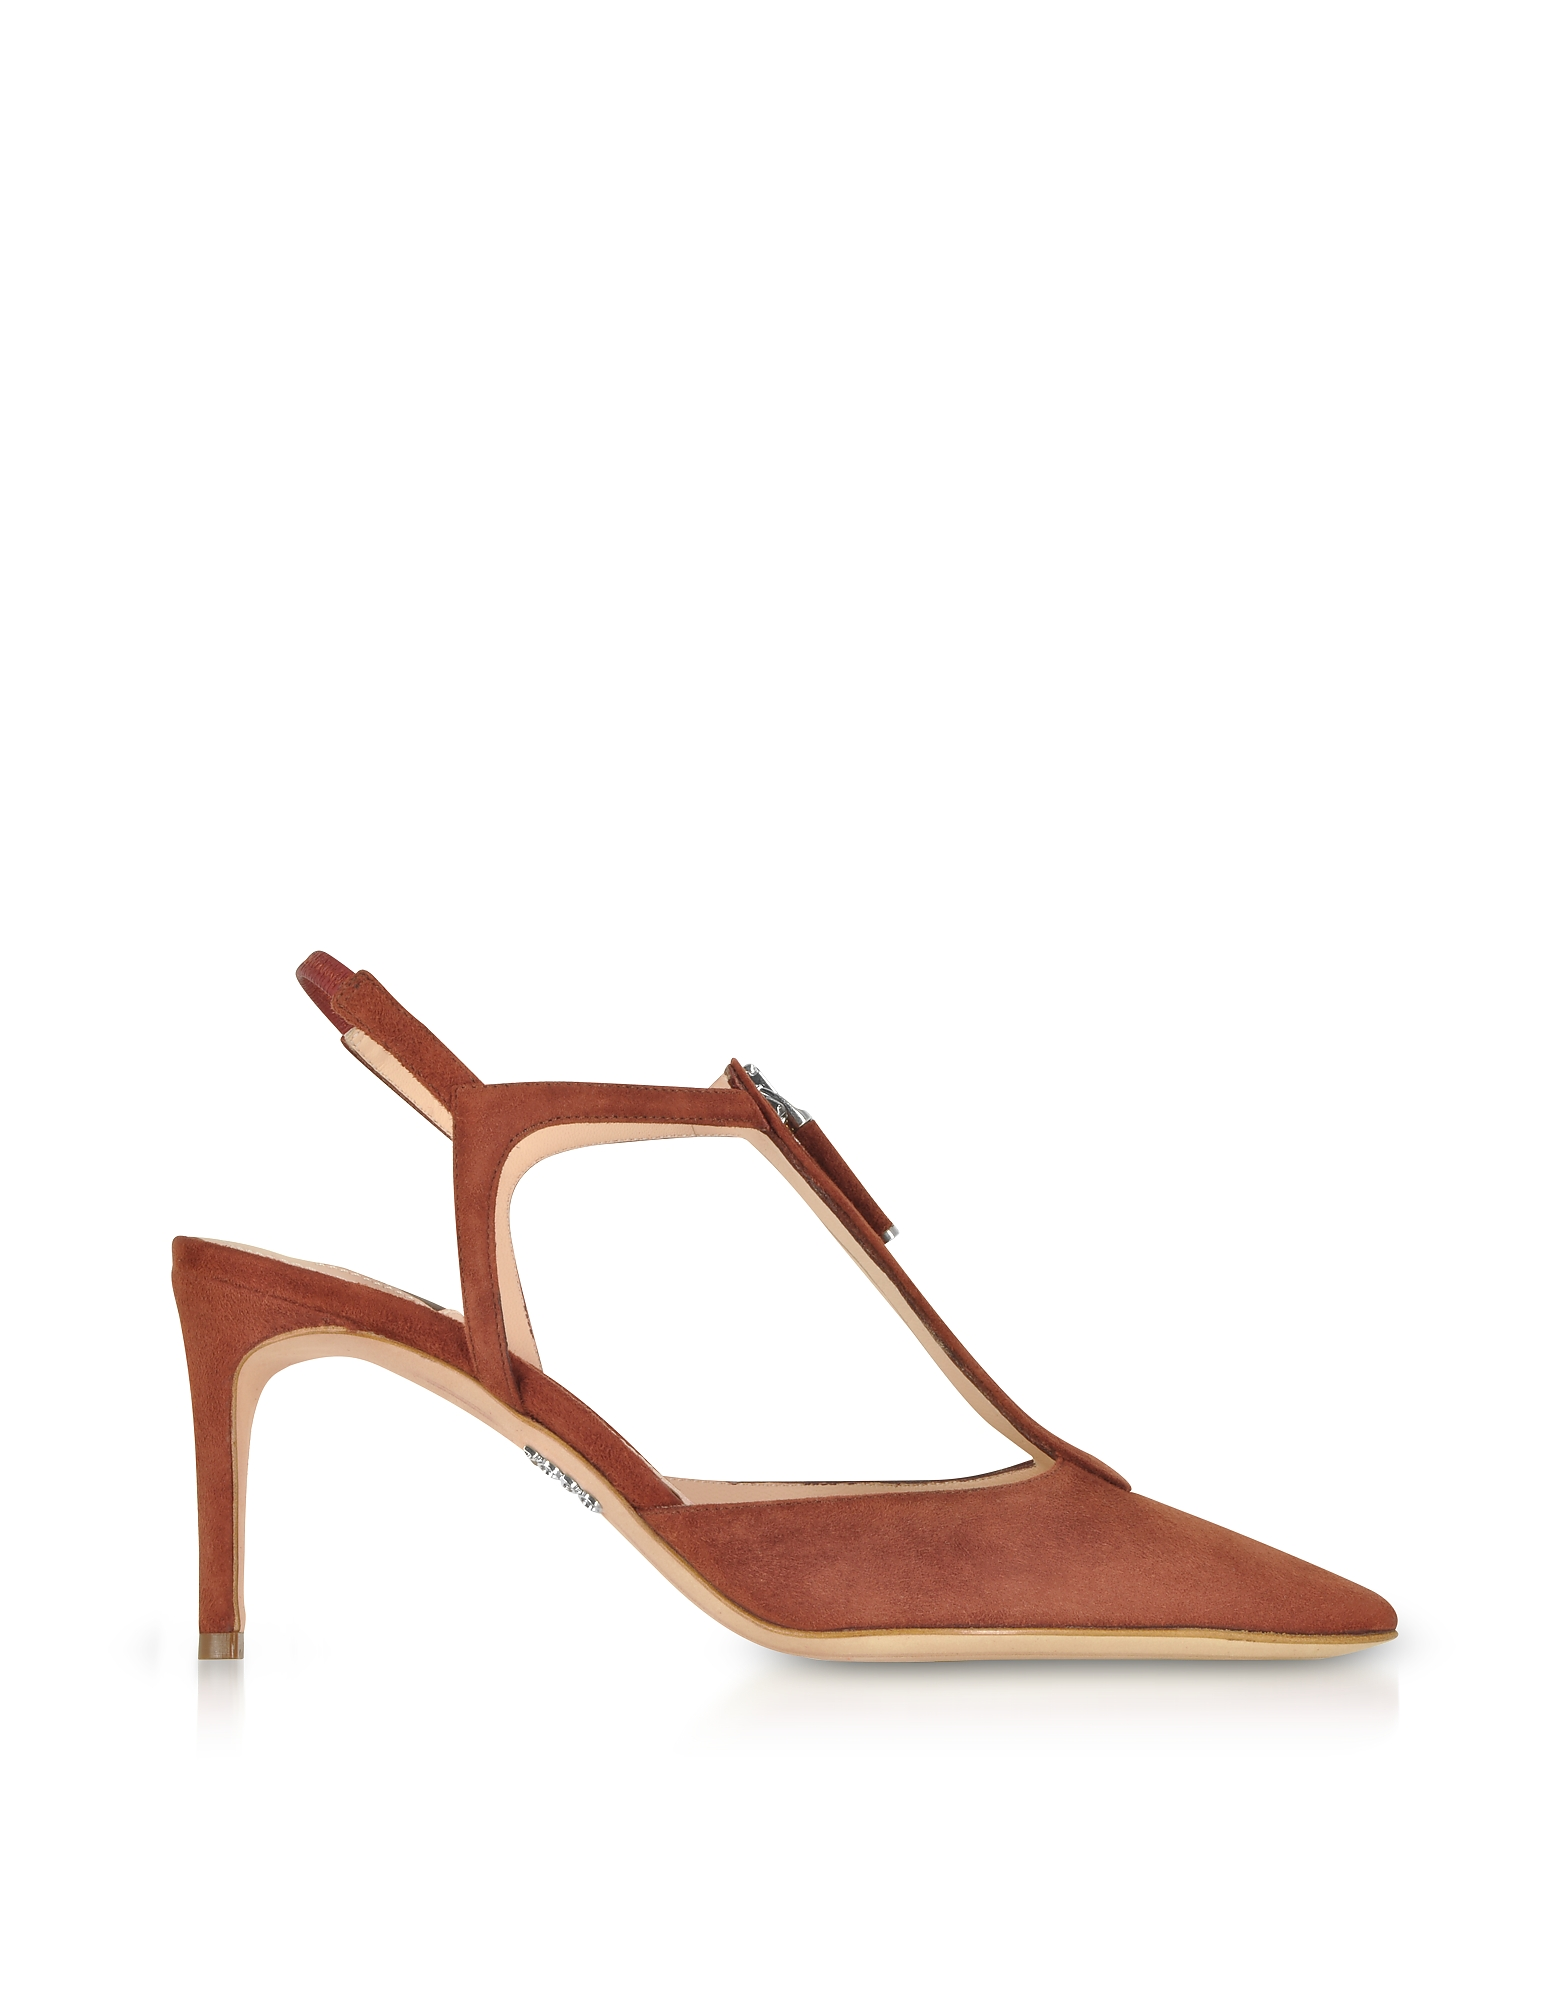 Rodo Shoes, Brown Suede High Heel Zip Pump